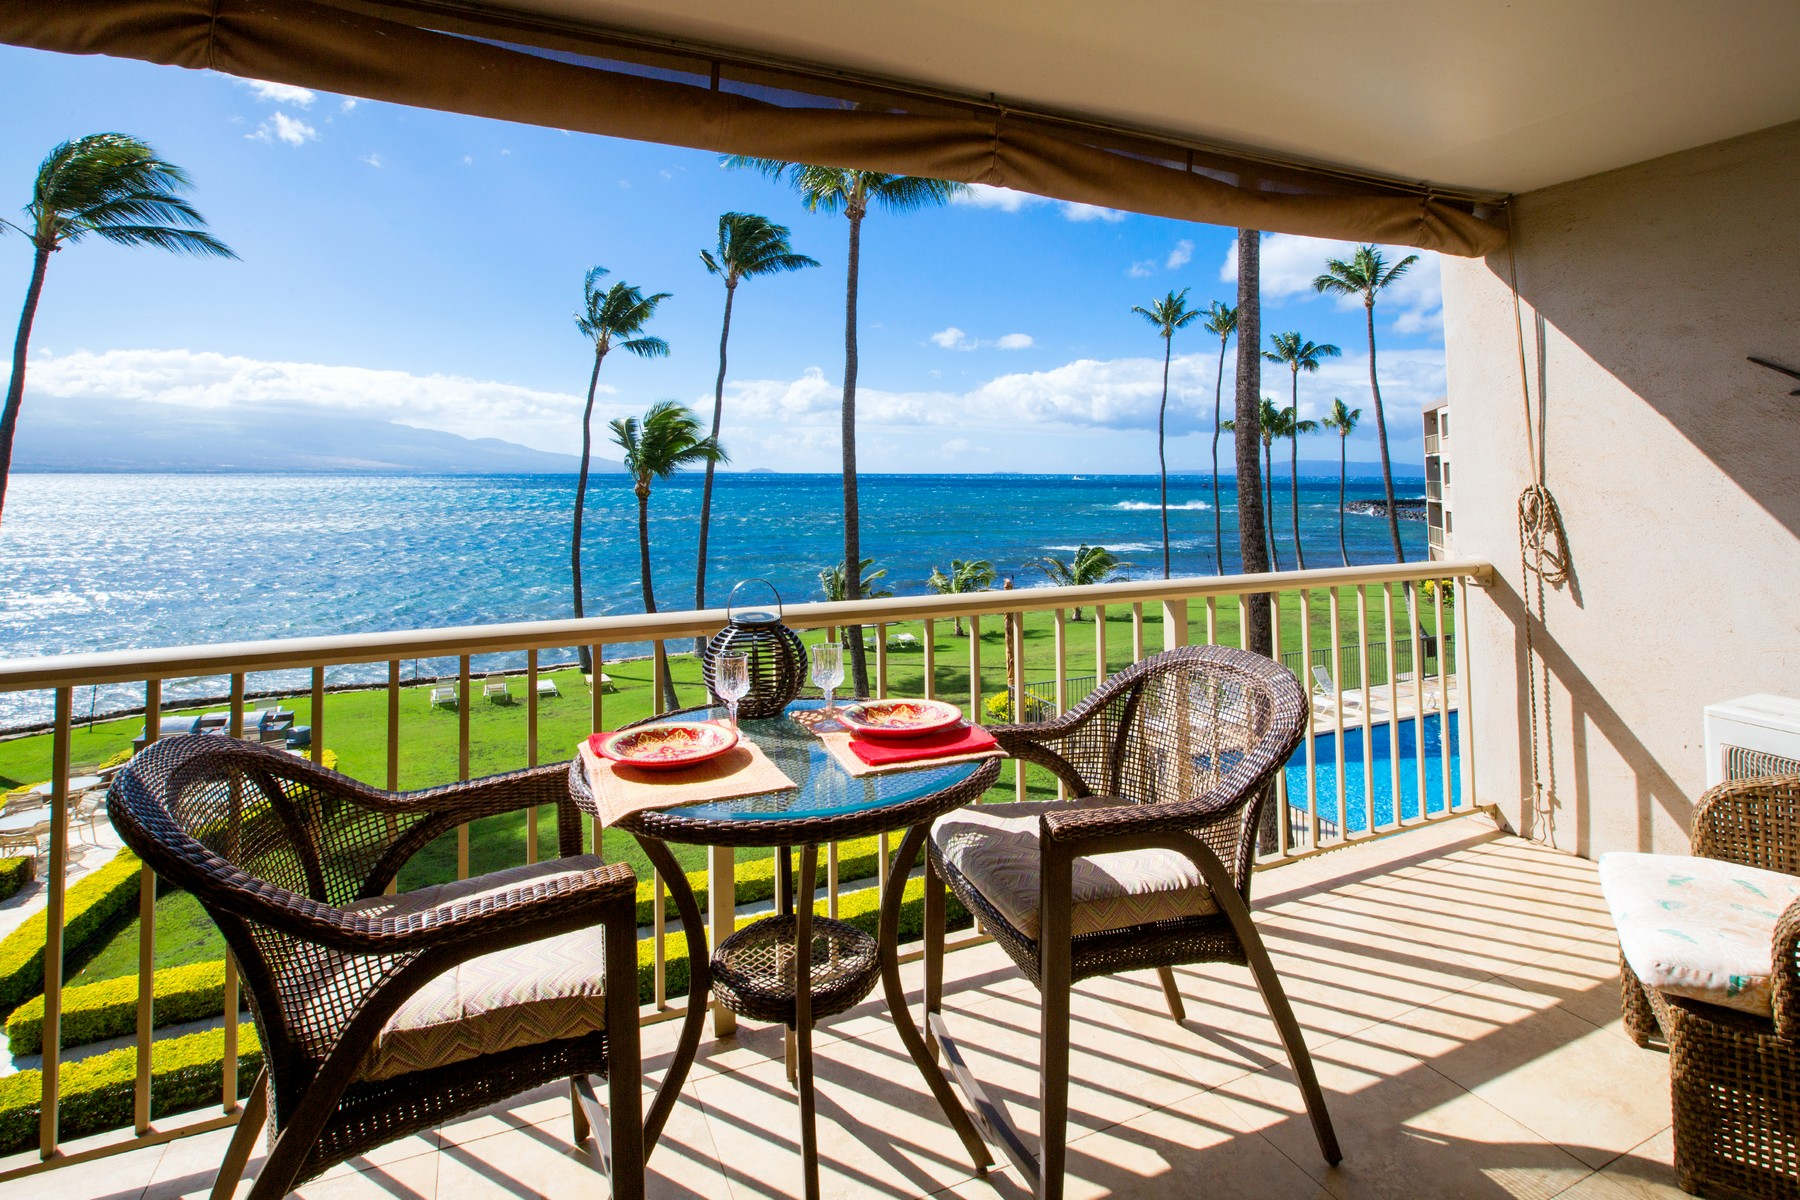 Condominium for Sale at Live Ocean Front 70 Hauoli Street, Maalaea Kai 311 Wailuku, Hawaii 96793 United States